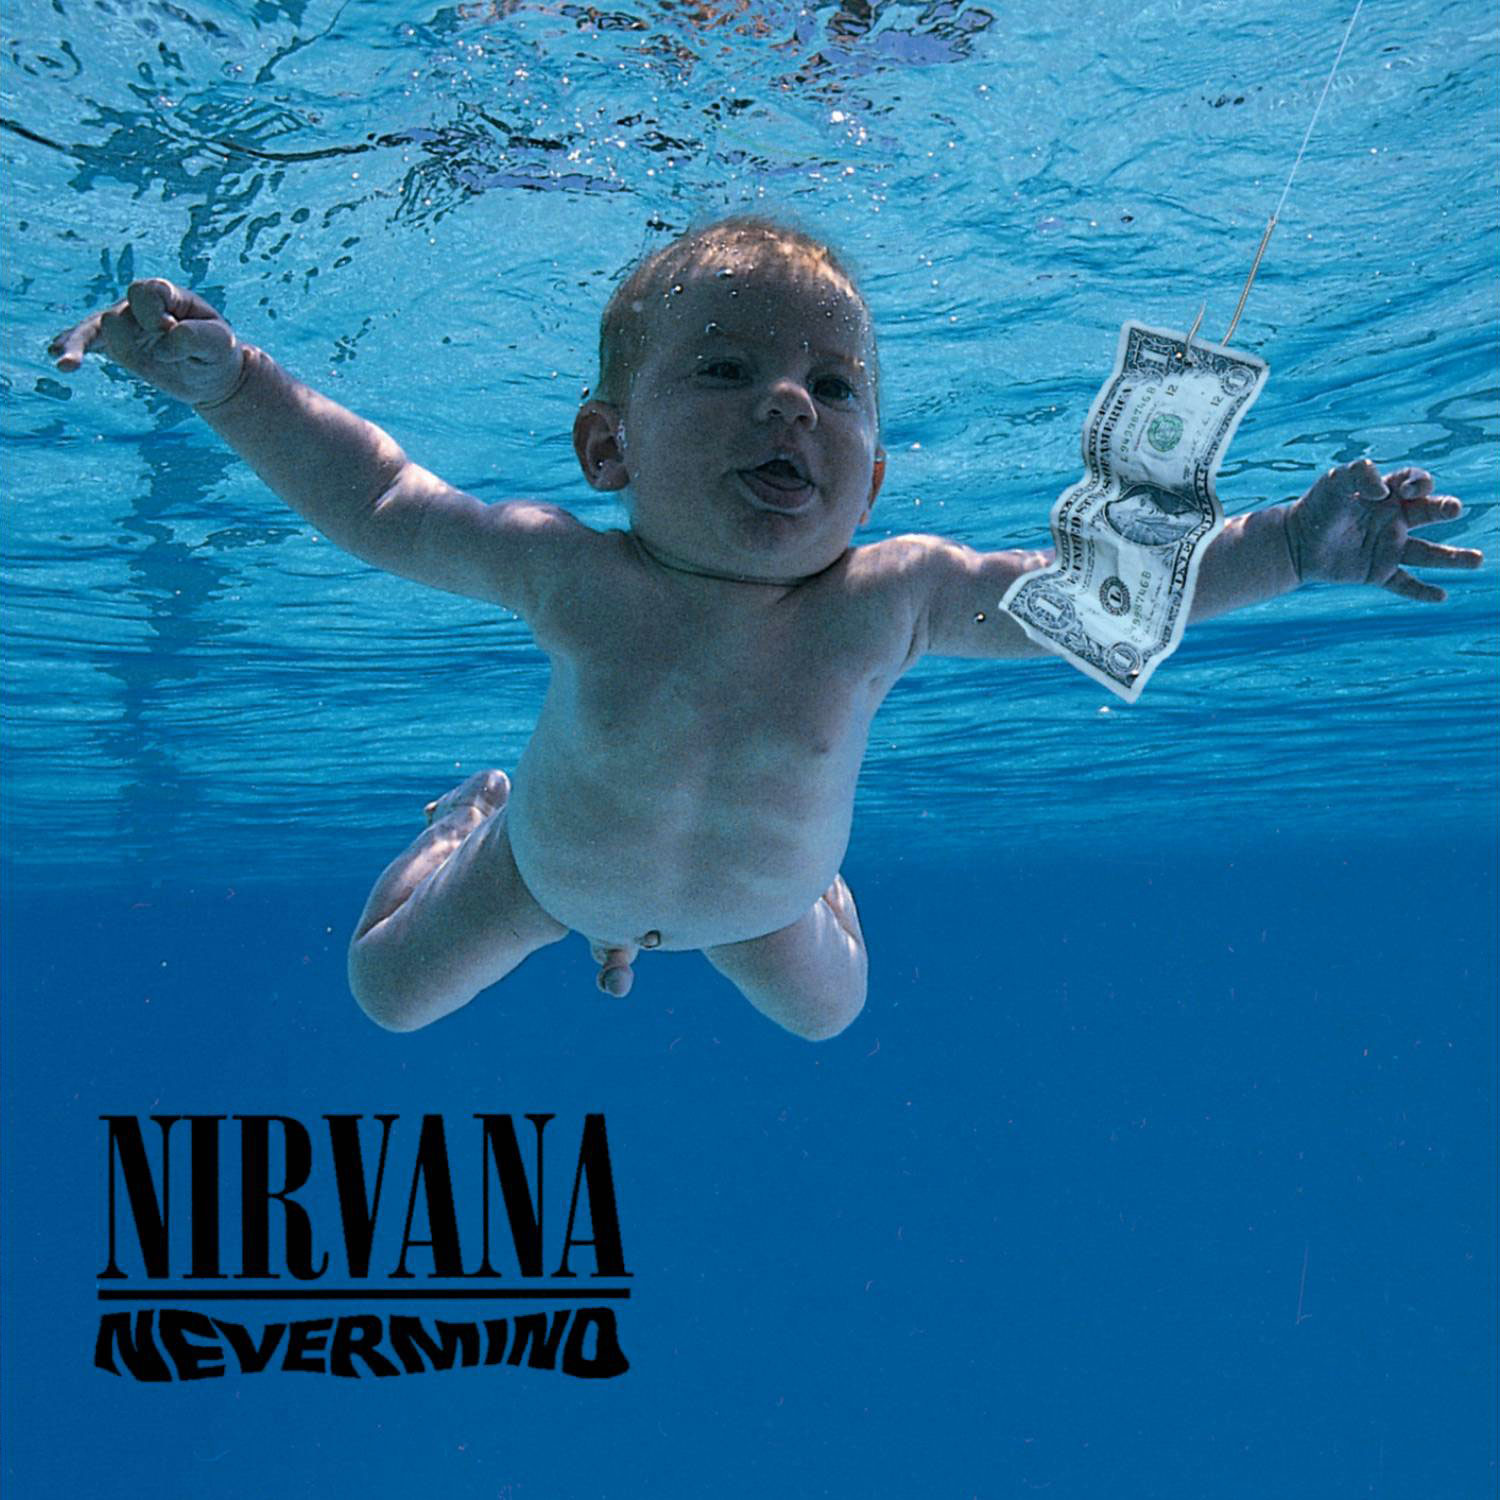 Nirvana - Nevermind - Smells Like Teen Spirit - 1991